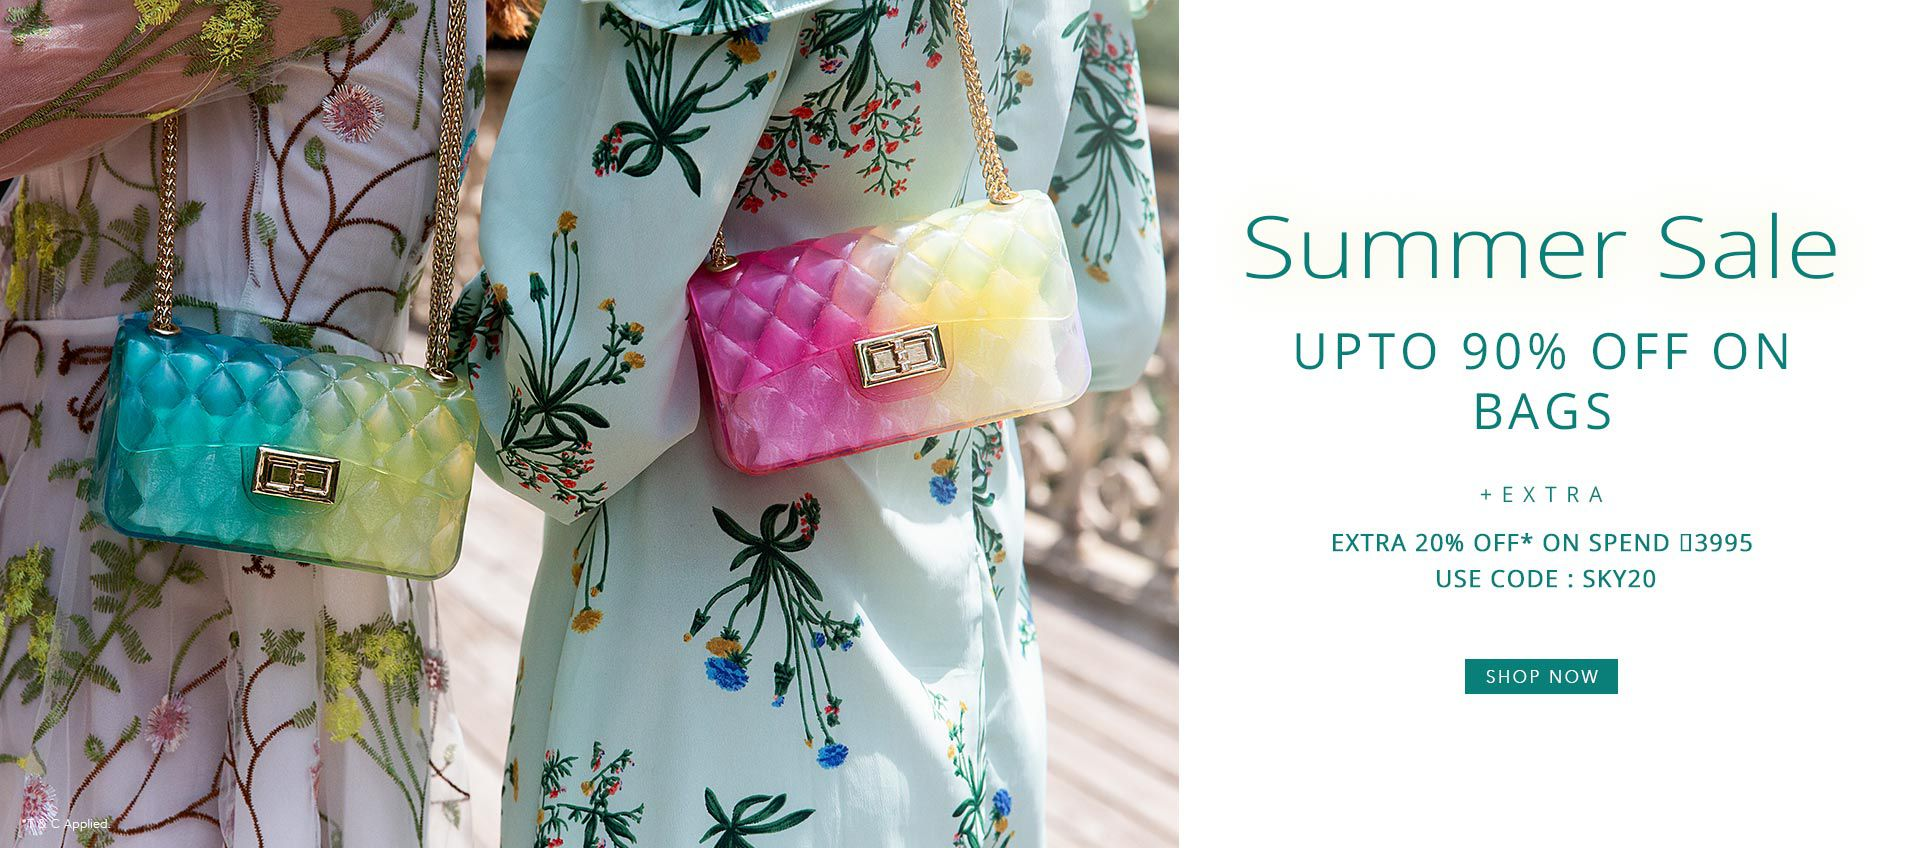 SUMMER SALE UPTO 90% OFF ON BAGS